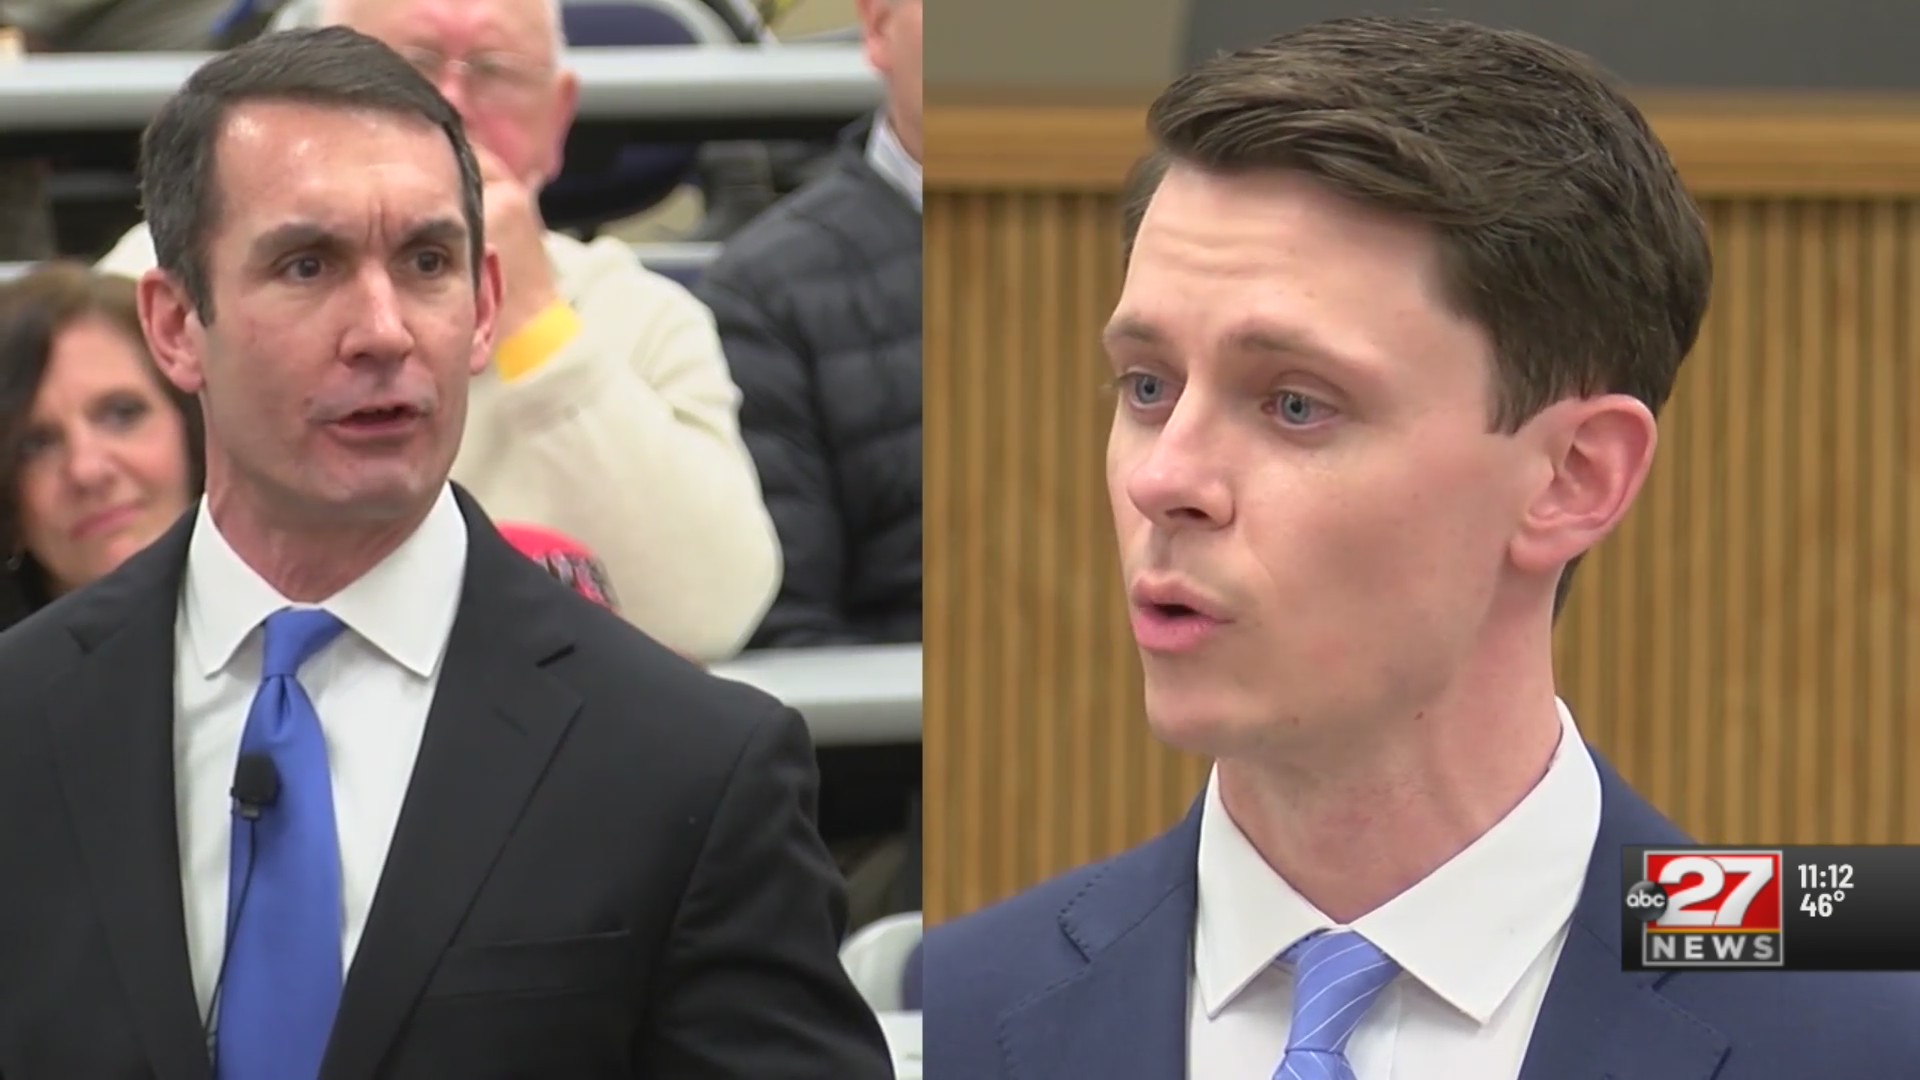 Brier and DePasquale face off in town hall debate